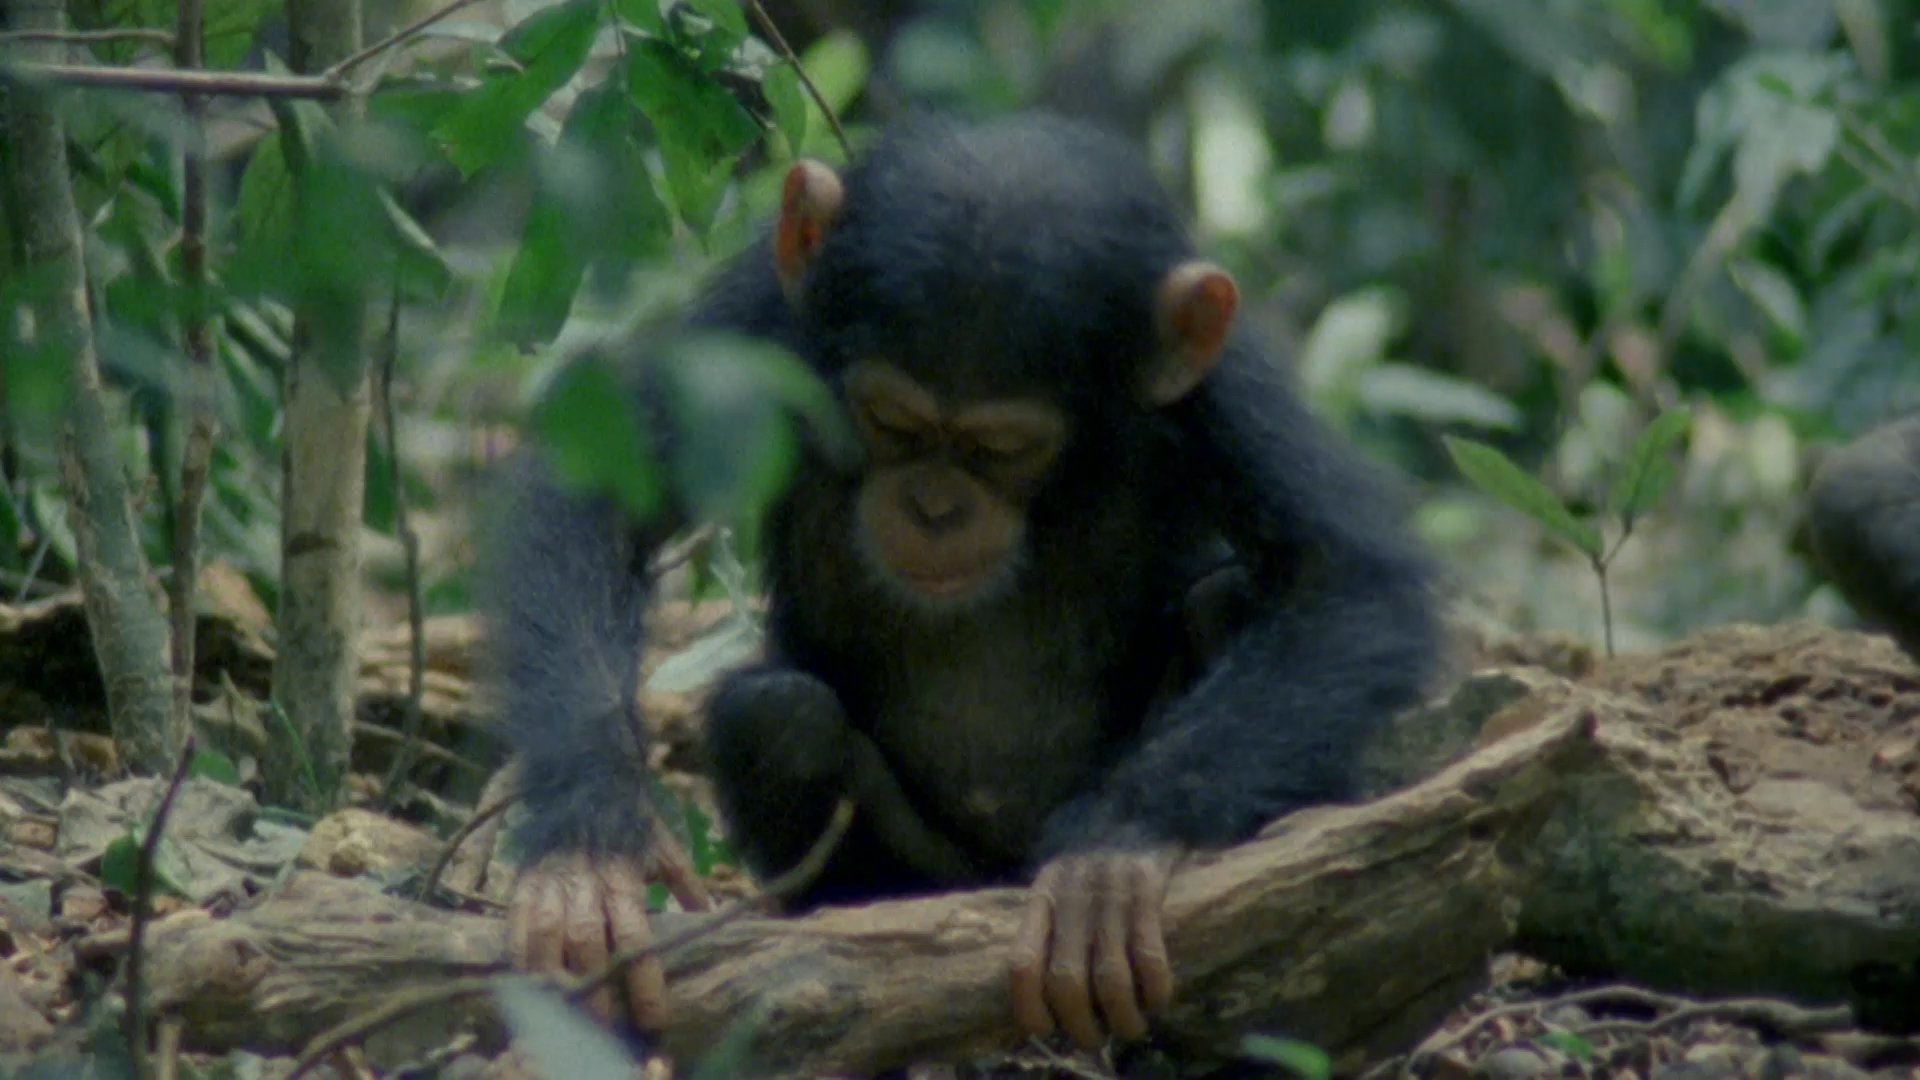 RT @natgeowild: These young chimps learn how to make tools to get their food! https://t.co/5q86oVF9eg